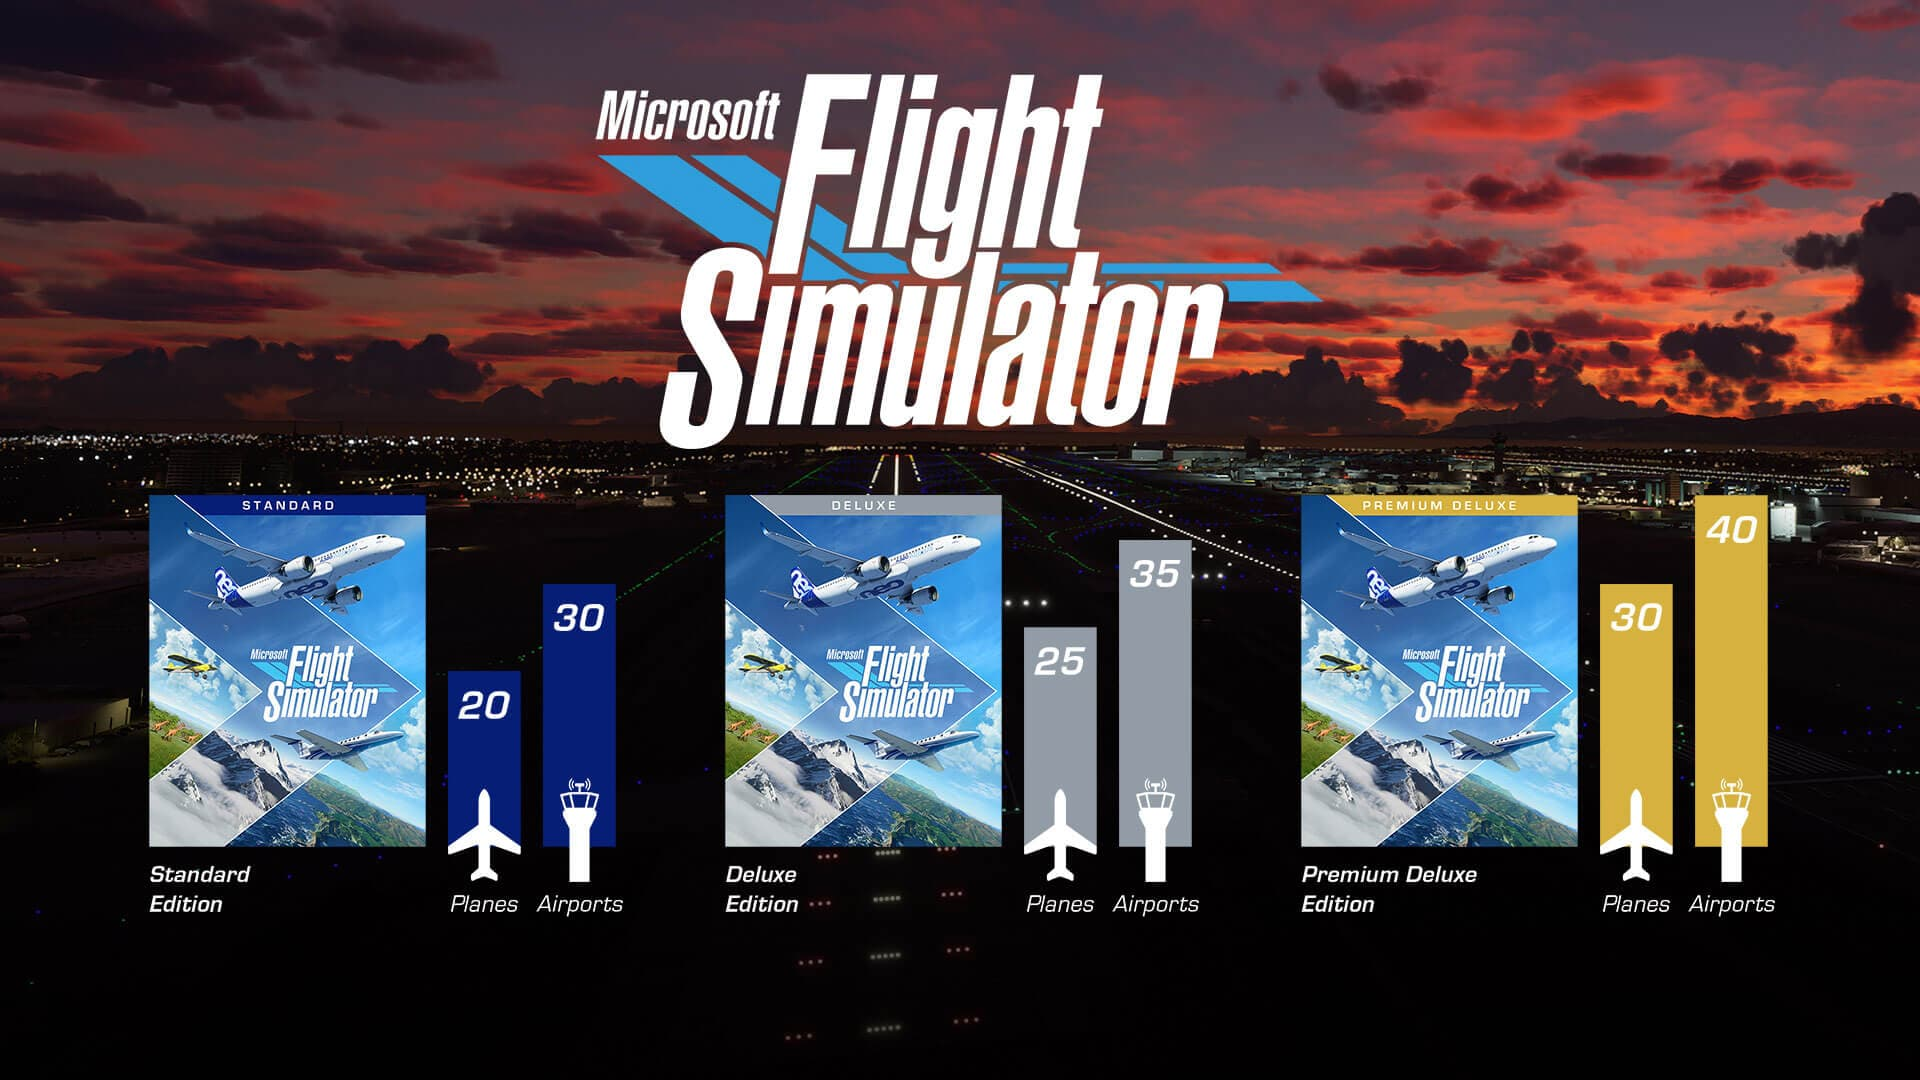 Flight Simulator Infographic